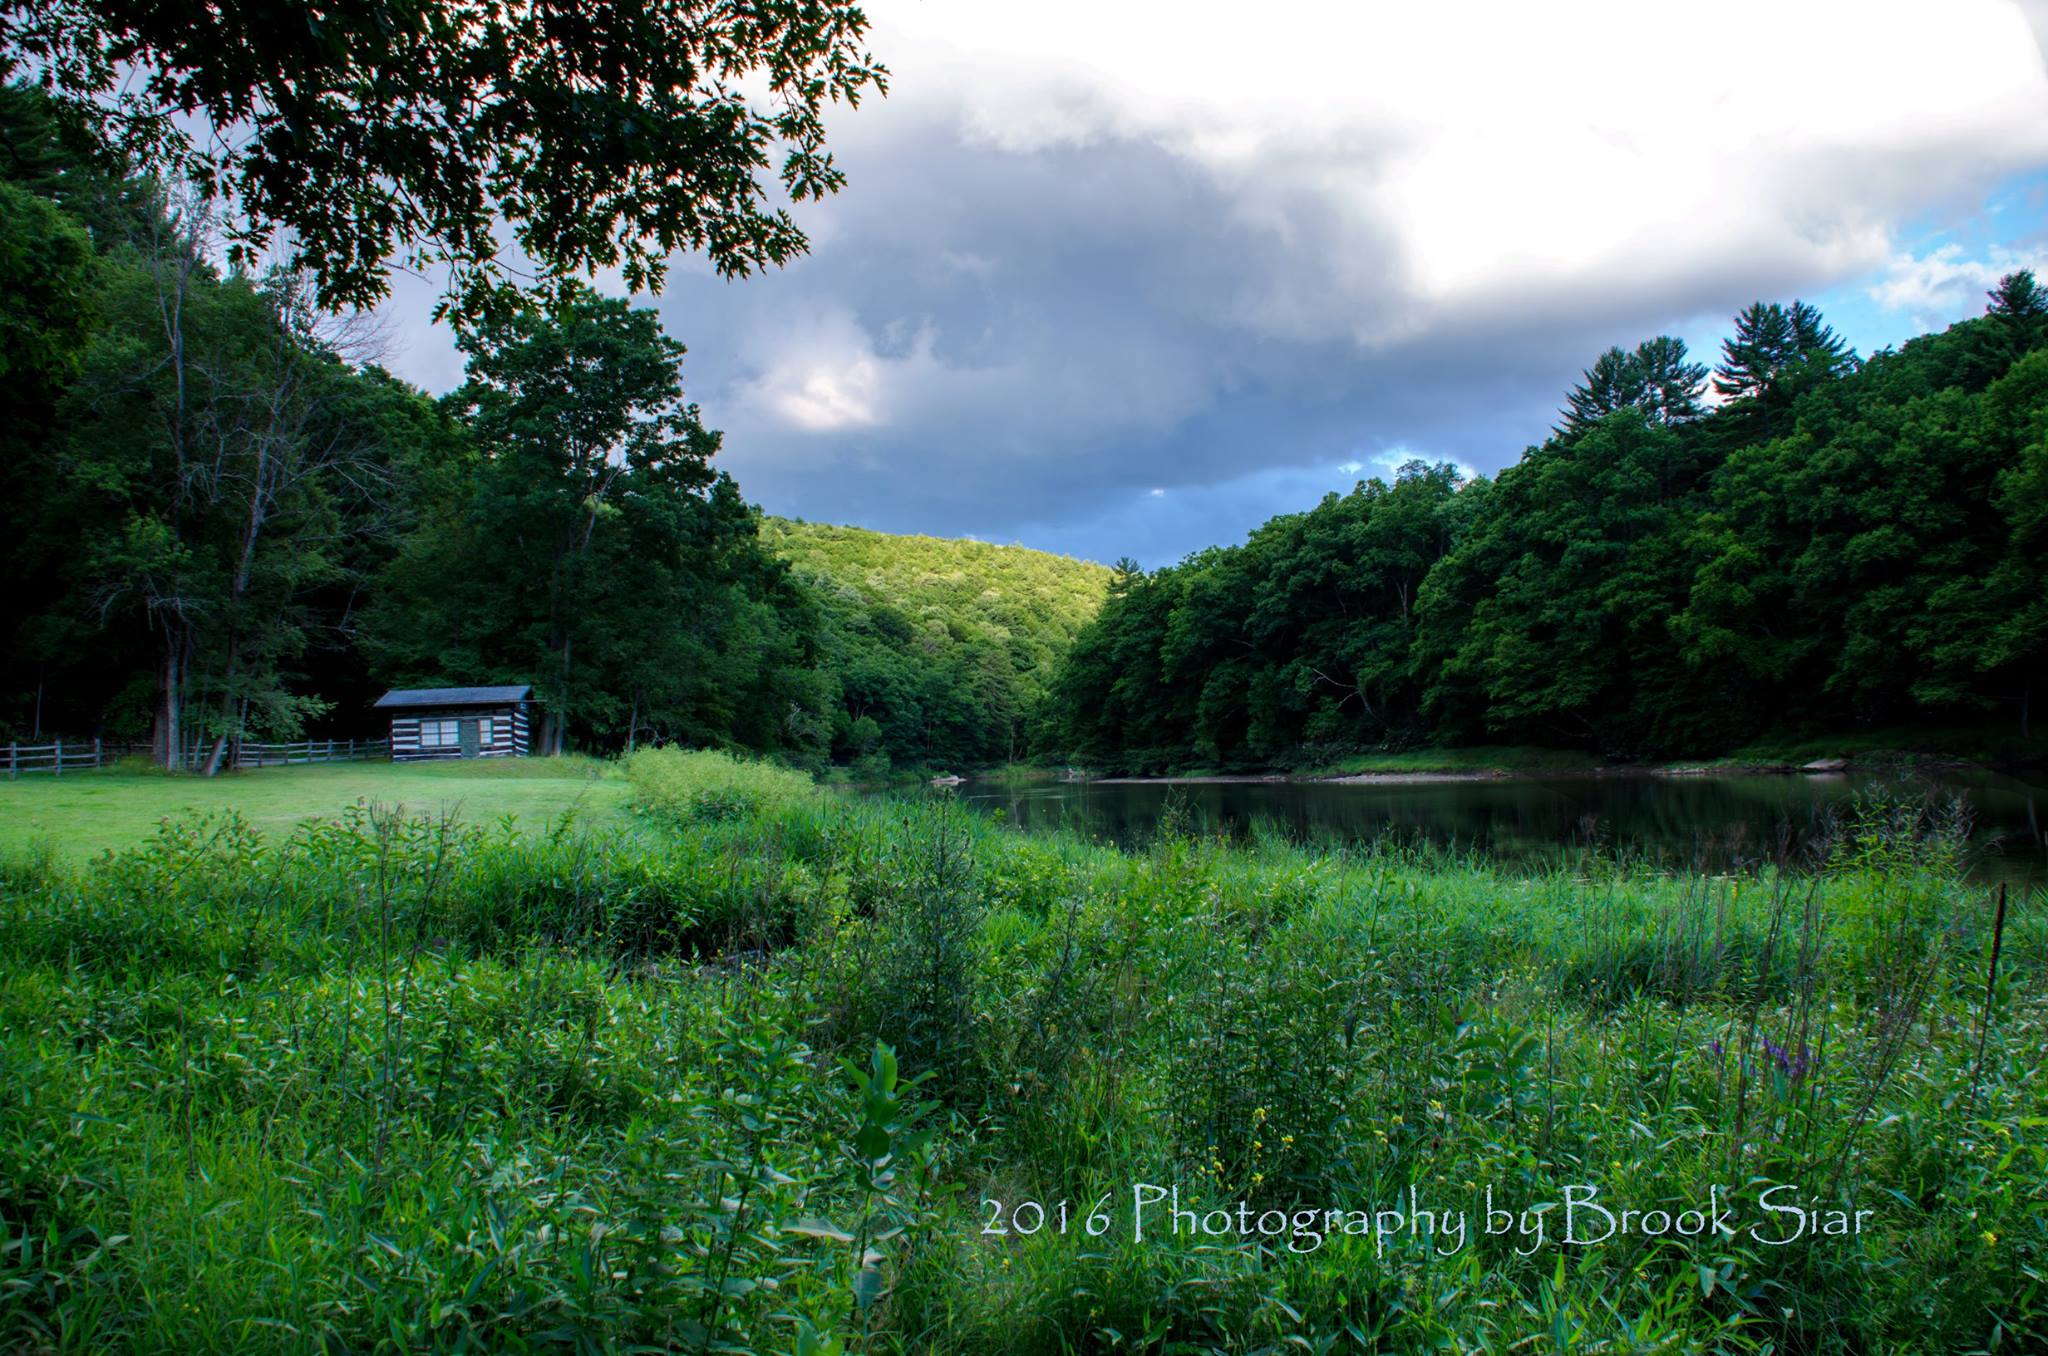 Evening in Cooksburg, Pa. Photo submitted by Brook Siar.